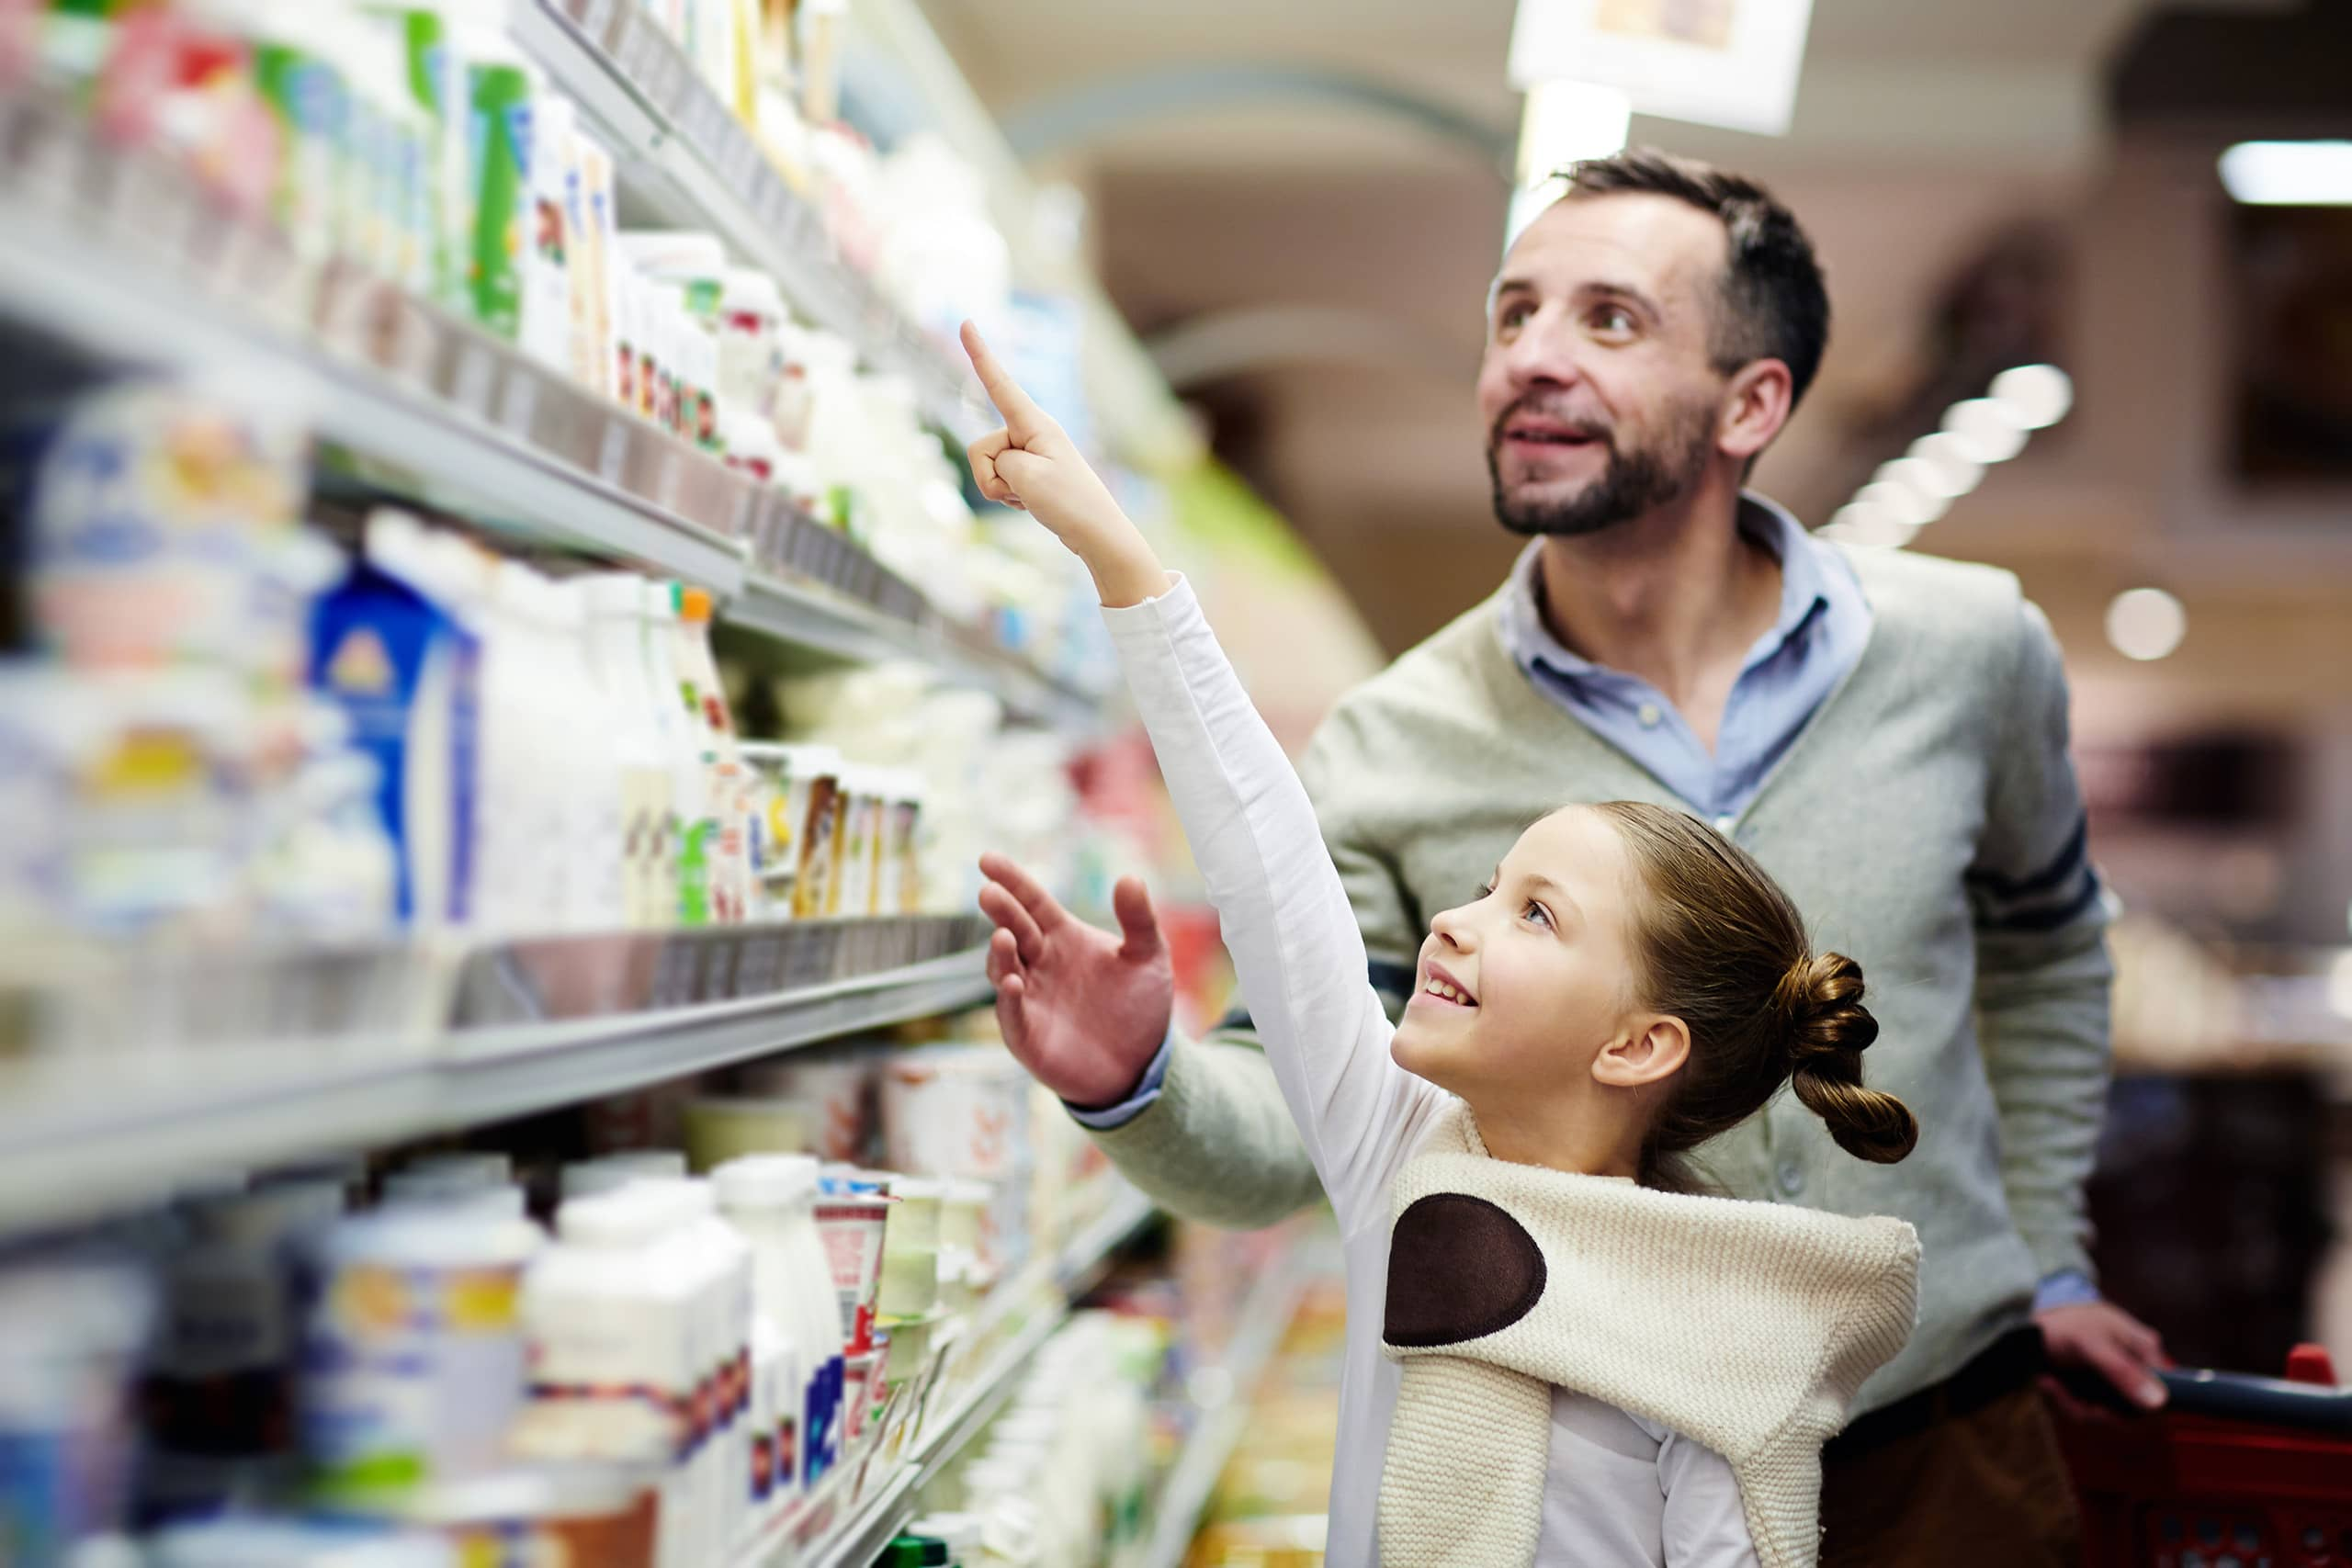 Man and young girl food shopping at grocery retail